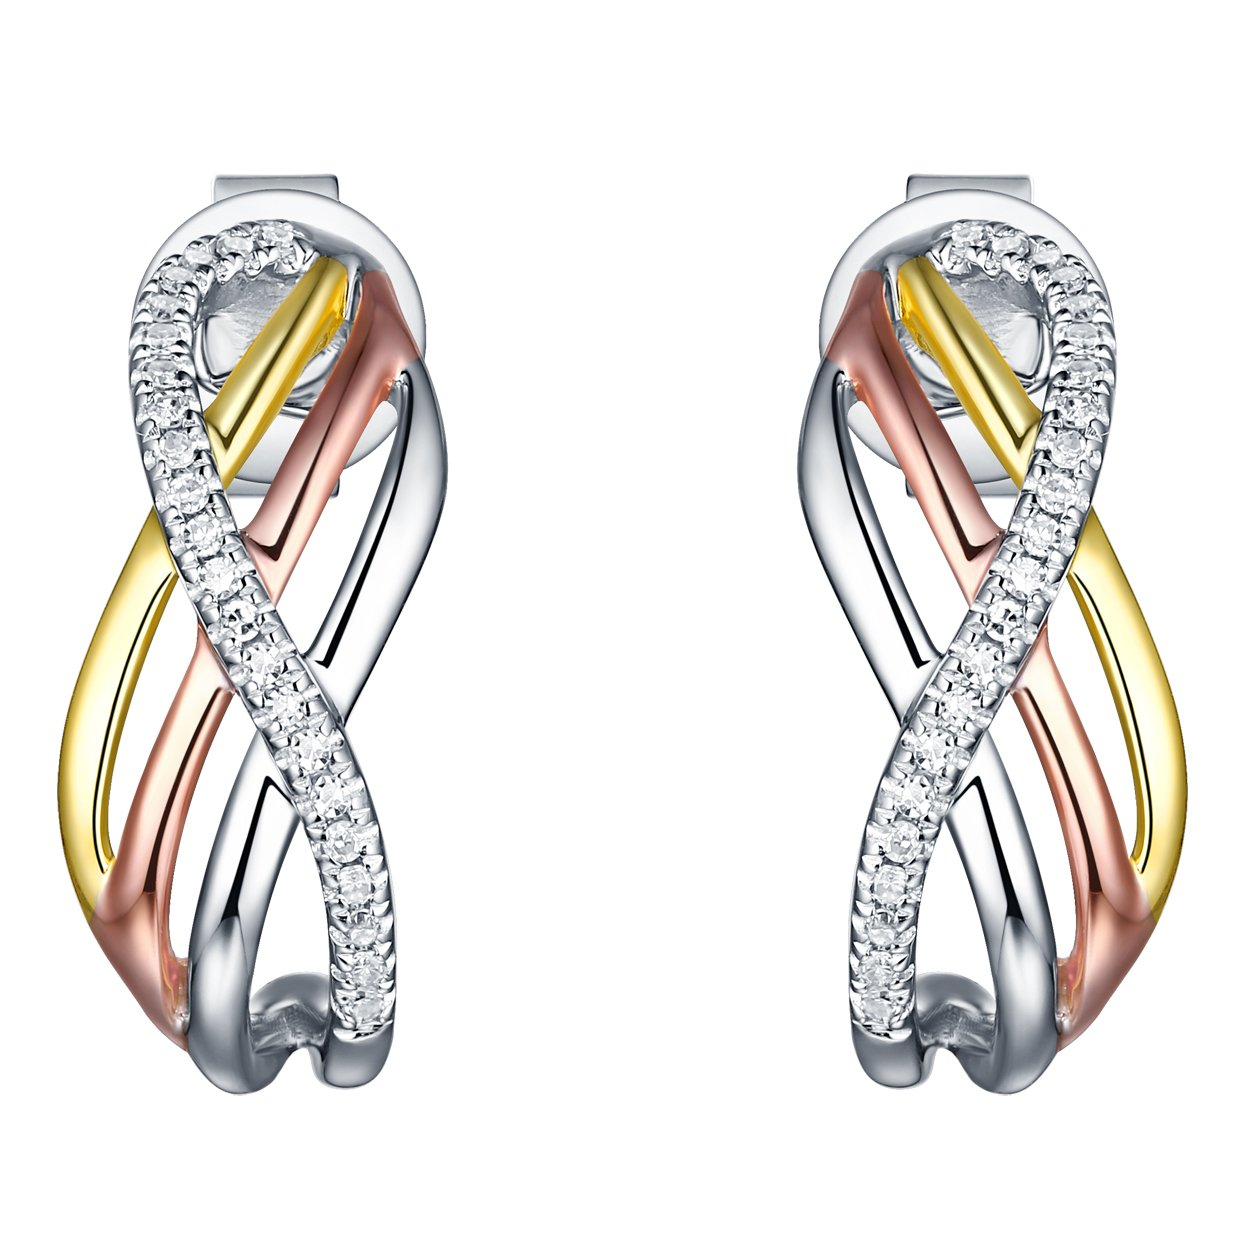 Prism Jewel 0.08Ct Natural Diamond Tri Color Gold Multi Crossover Push Back Earrings Crafted In 10k Gold